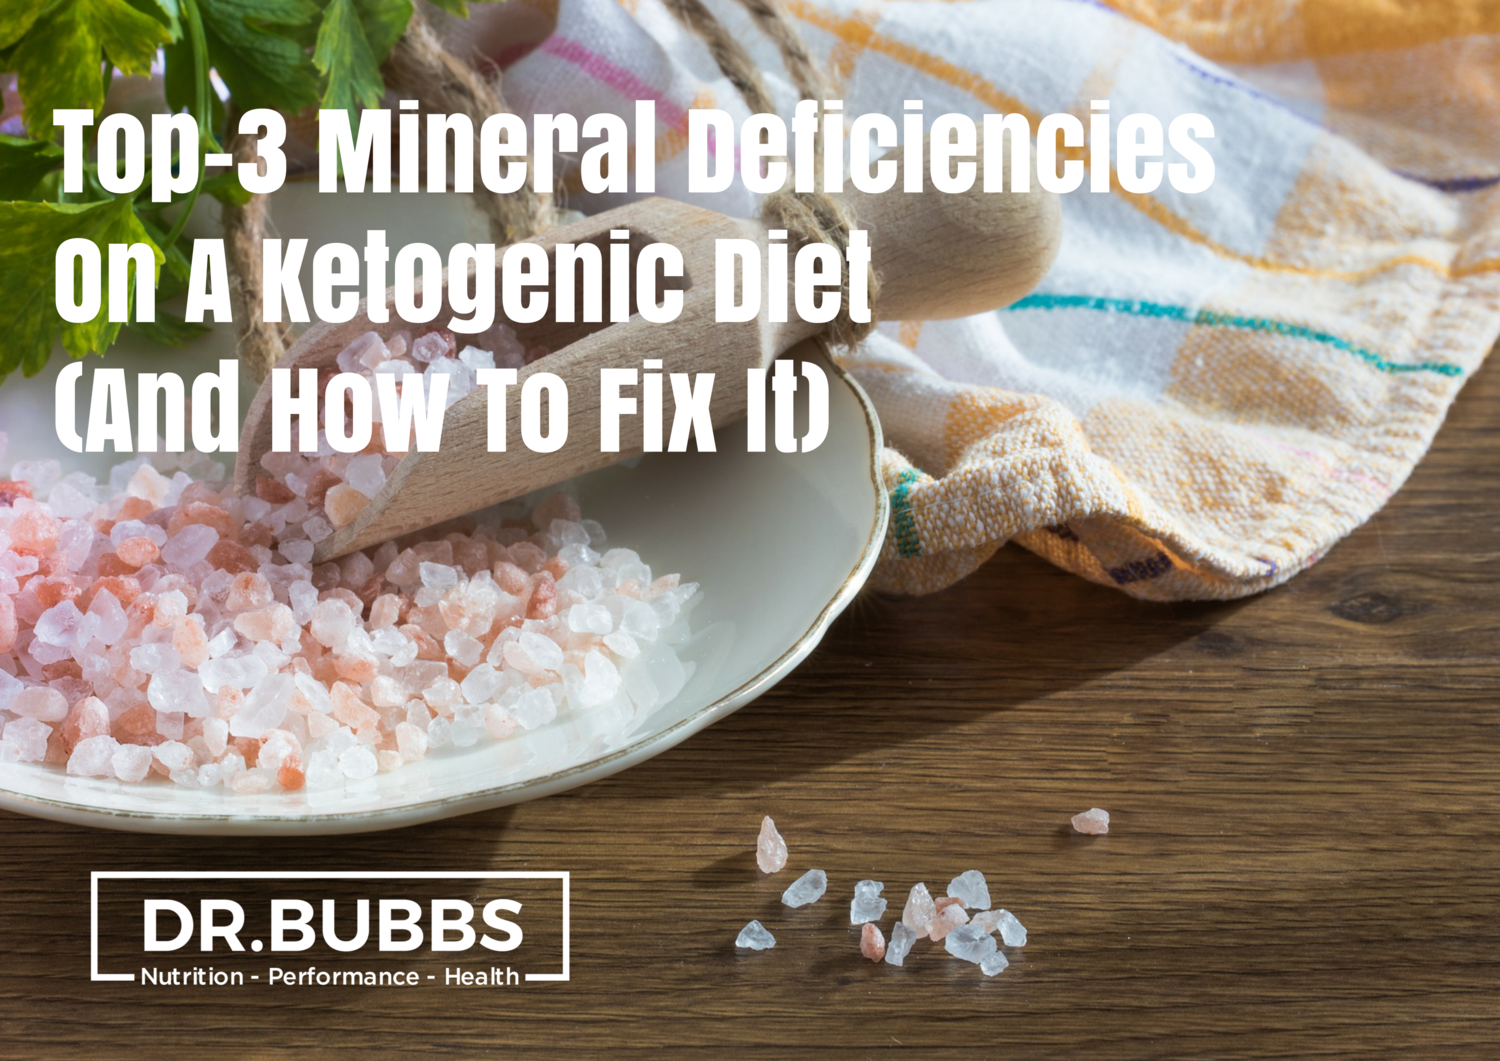 Top-3 Mineral Deficiencies On A Ketogenic Diet (And How To